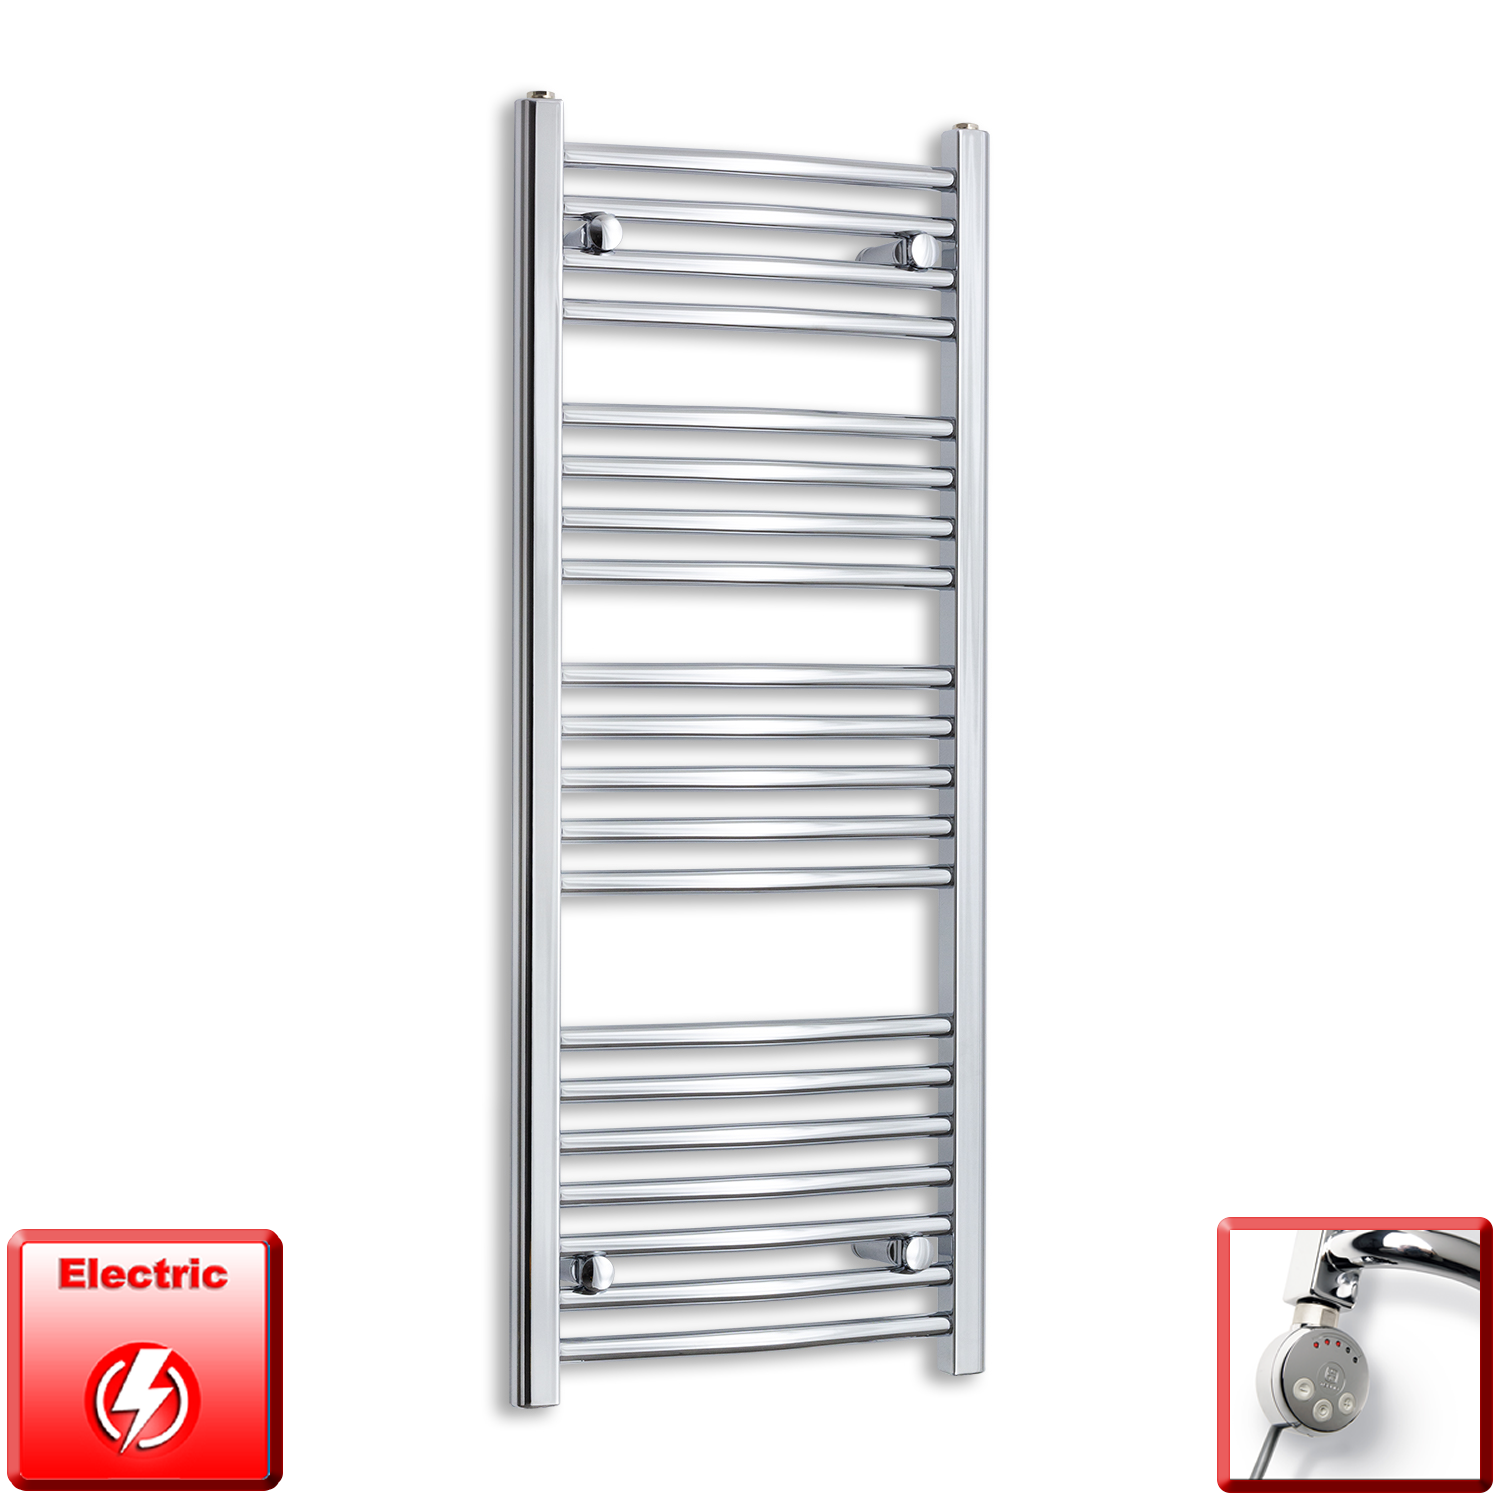 450mm Wide 1100mm High Pre-Filled Chrome Electric Towel Rail Radiator With Thermostatic MEG Element